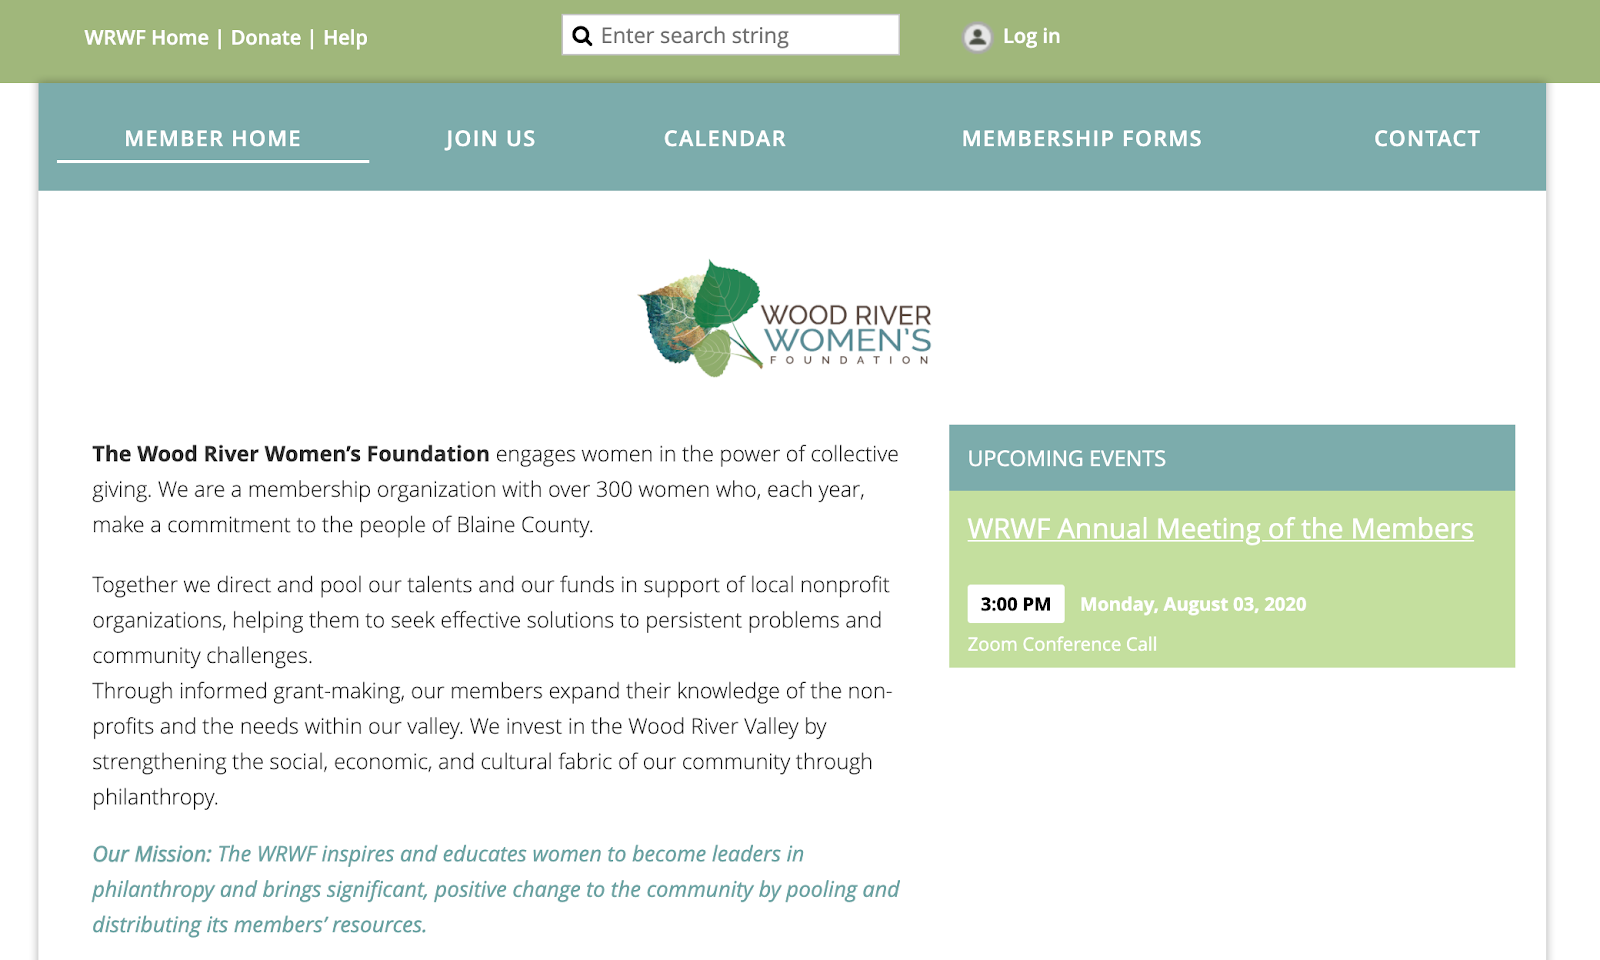 The Wood River Women's Foundation